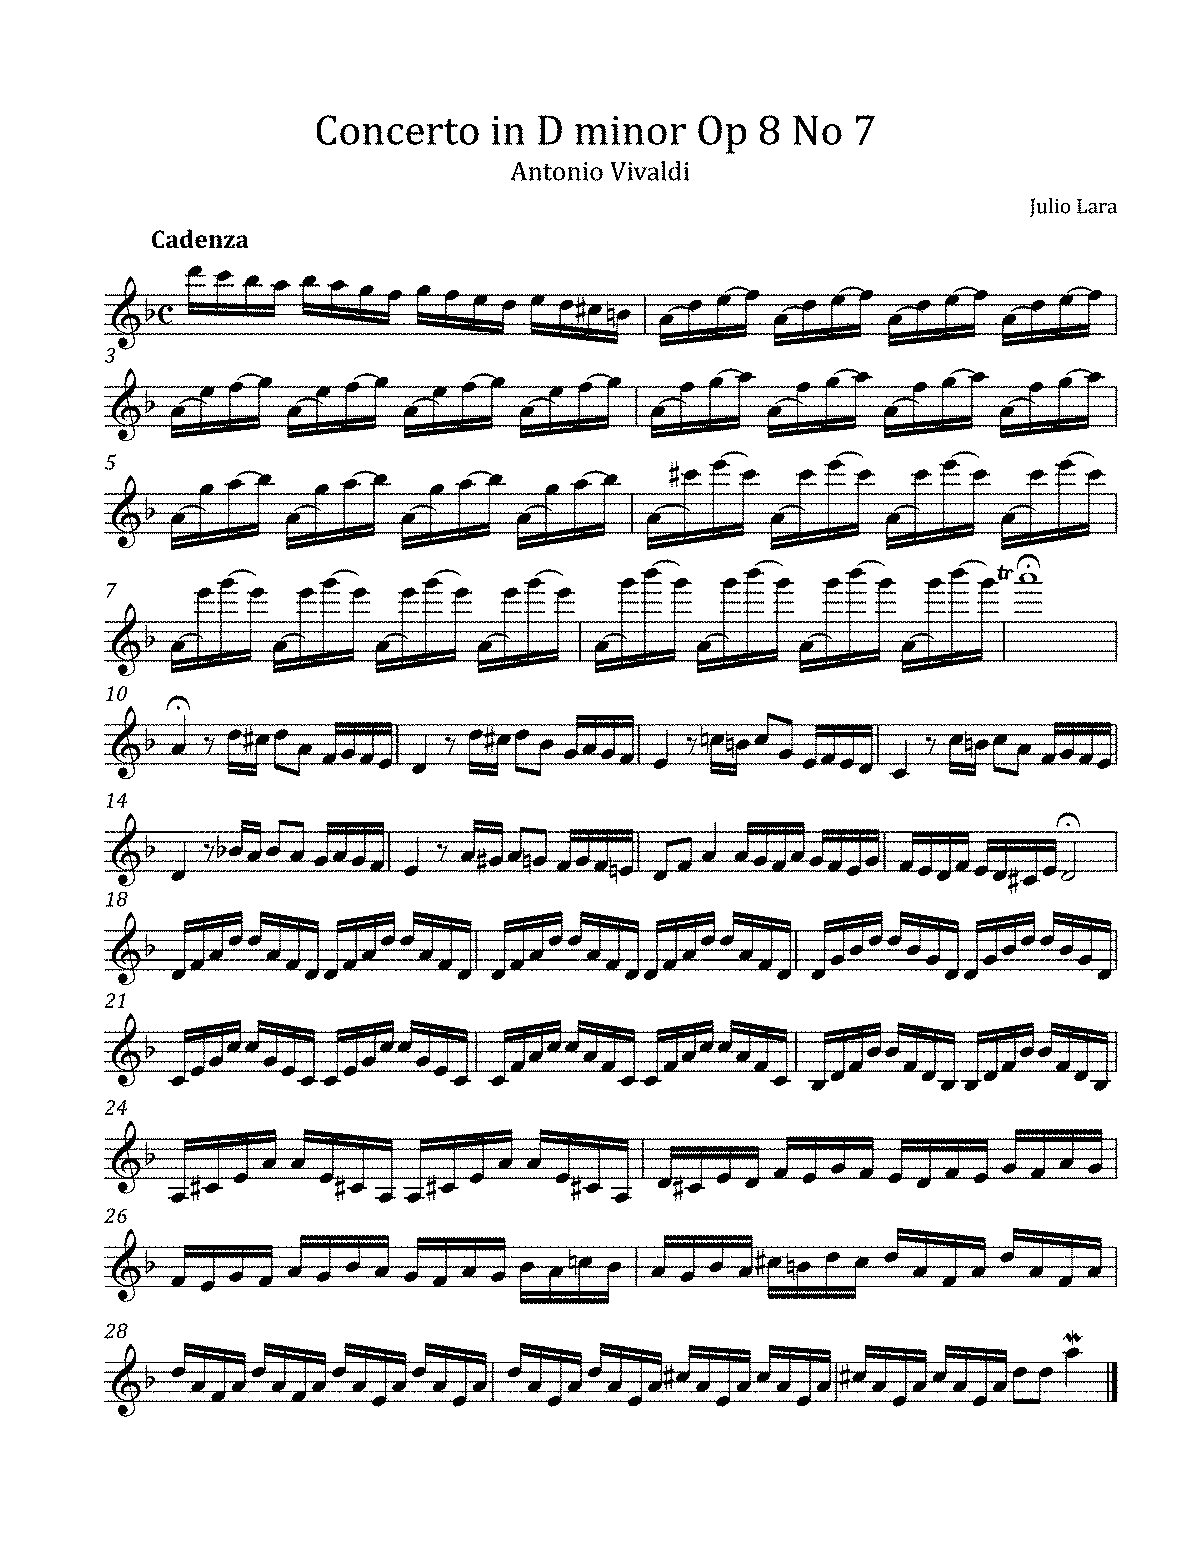 PMLP123070-Concerto in D minor Op 8 No 7-Cadenza.pdf